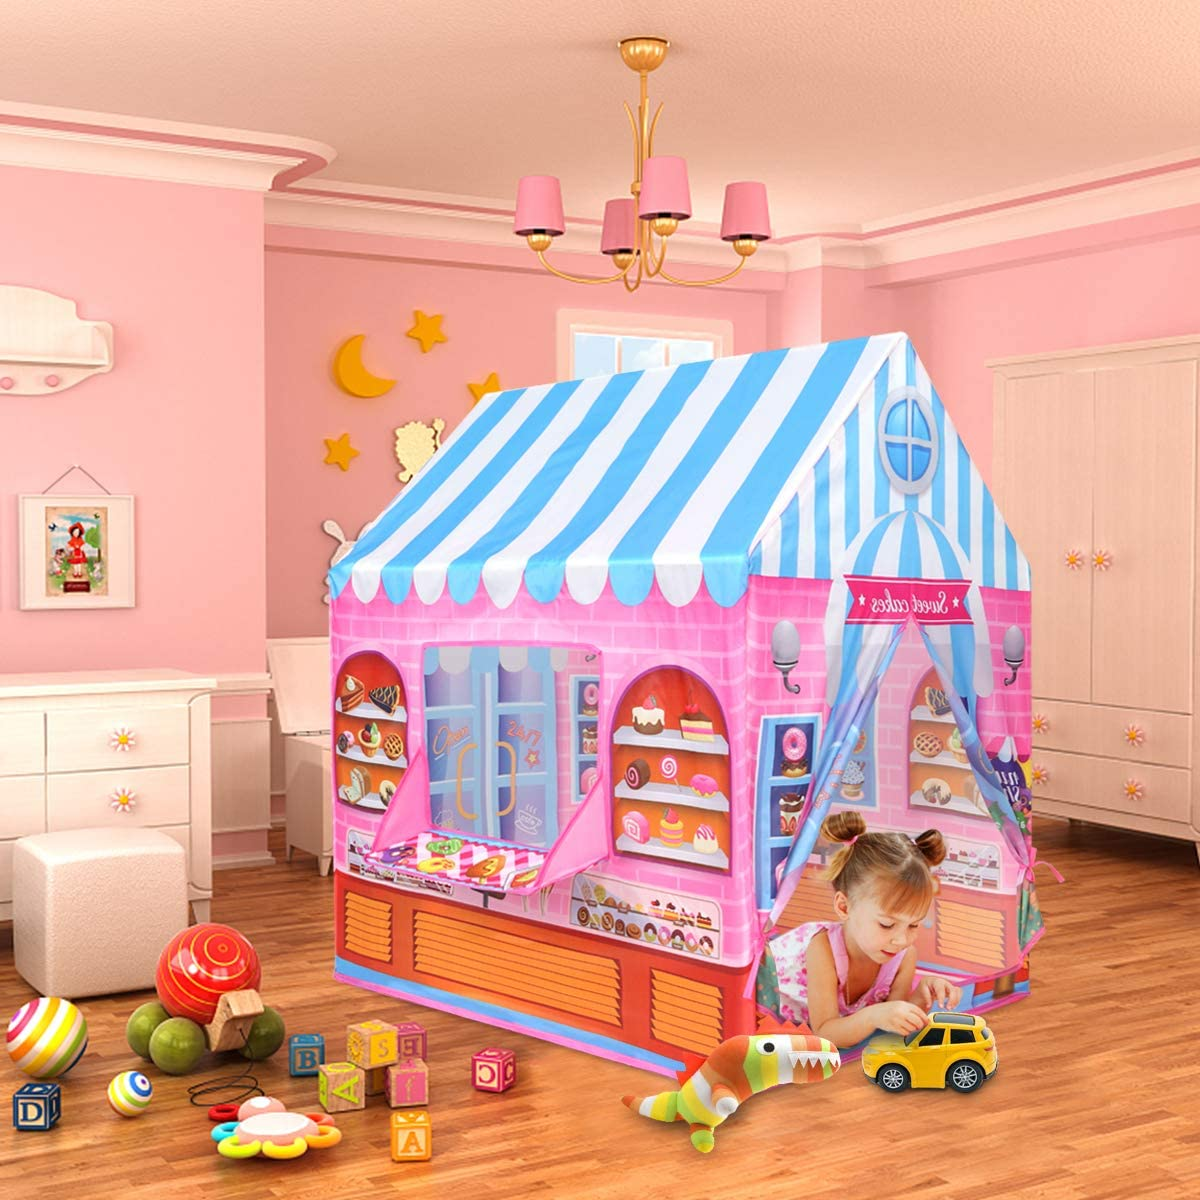 Anyshock Playhouse for Kids Tent,Candy Princess Castle ...